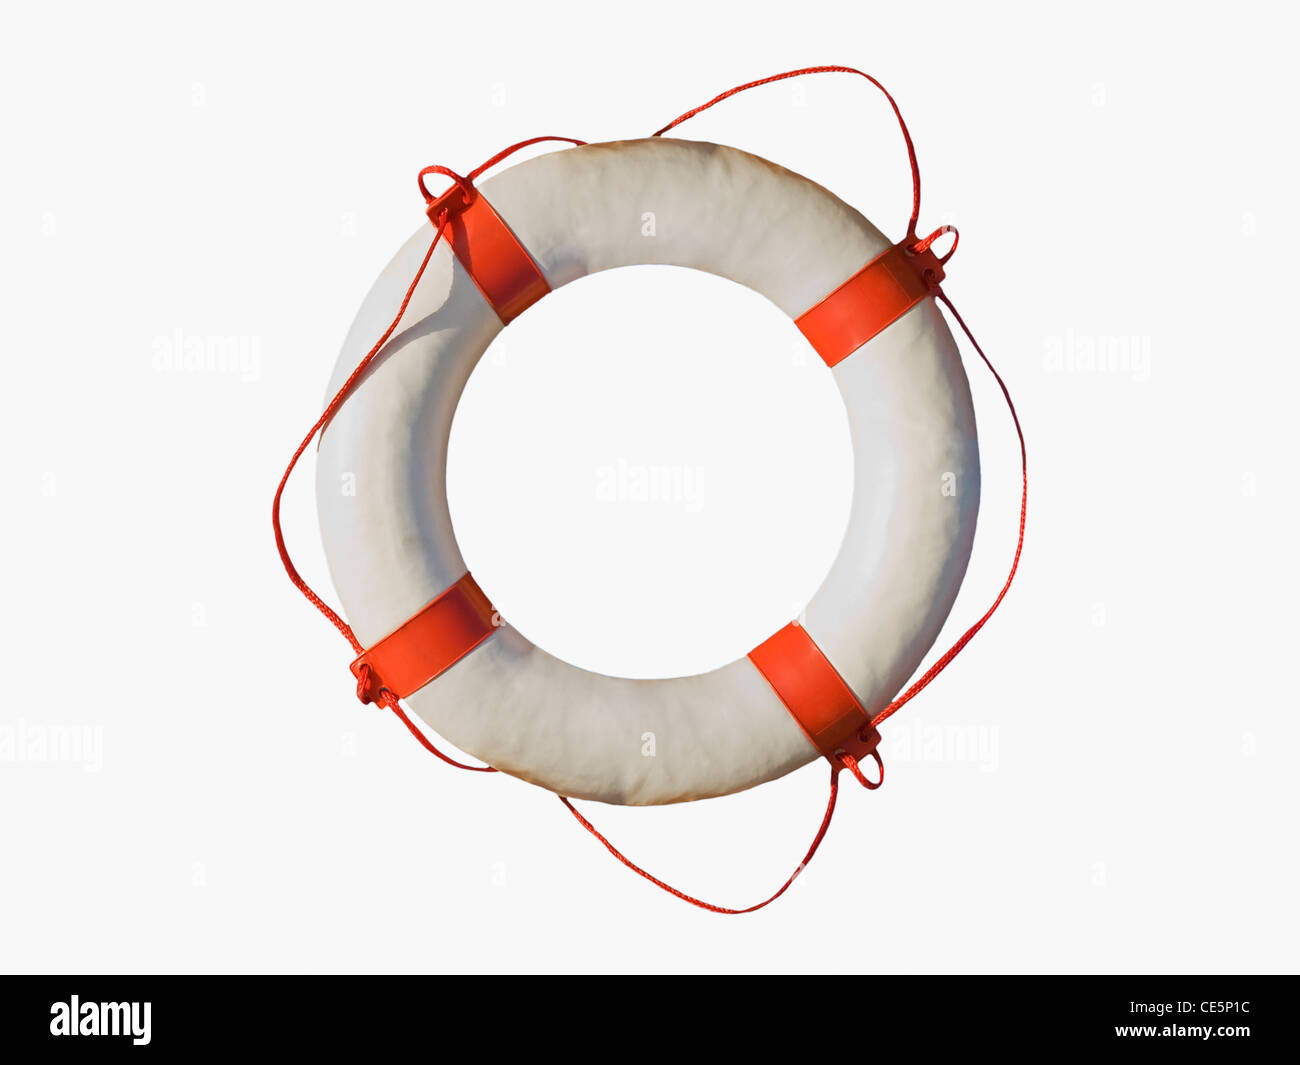 Detailansicht eines Rettungsringsauf weißem Hintergrund | Detail photo of a lifebuoy, white background - Stock Image